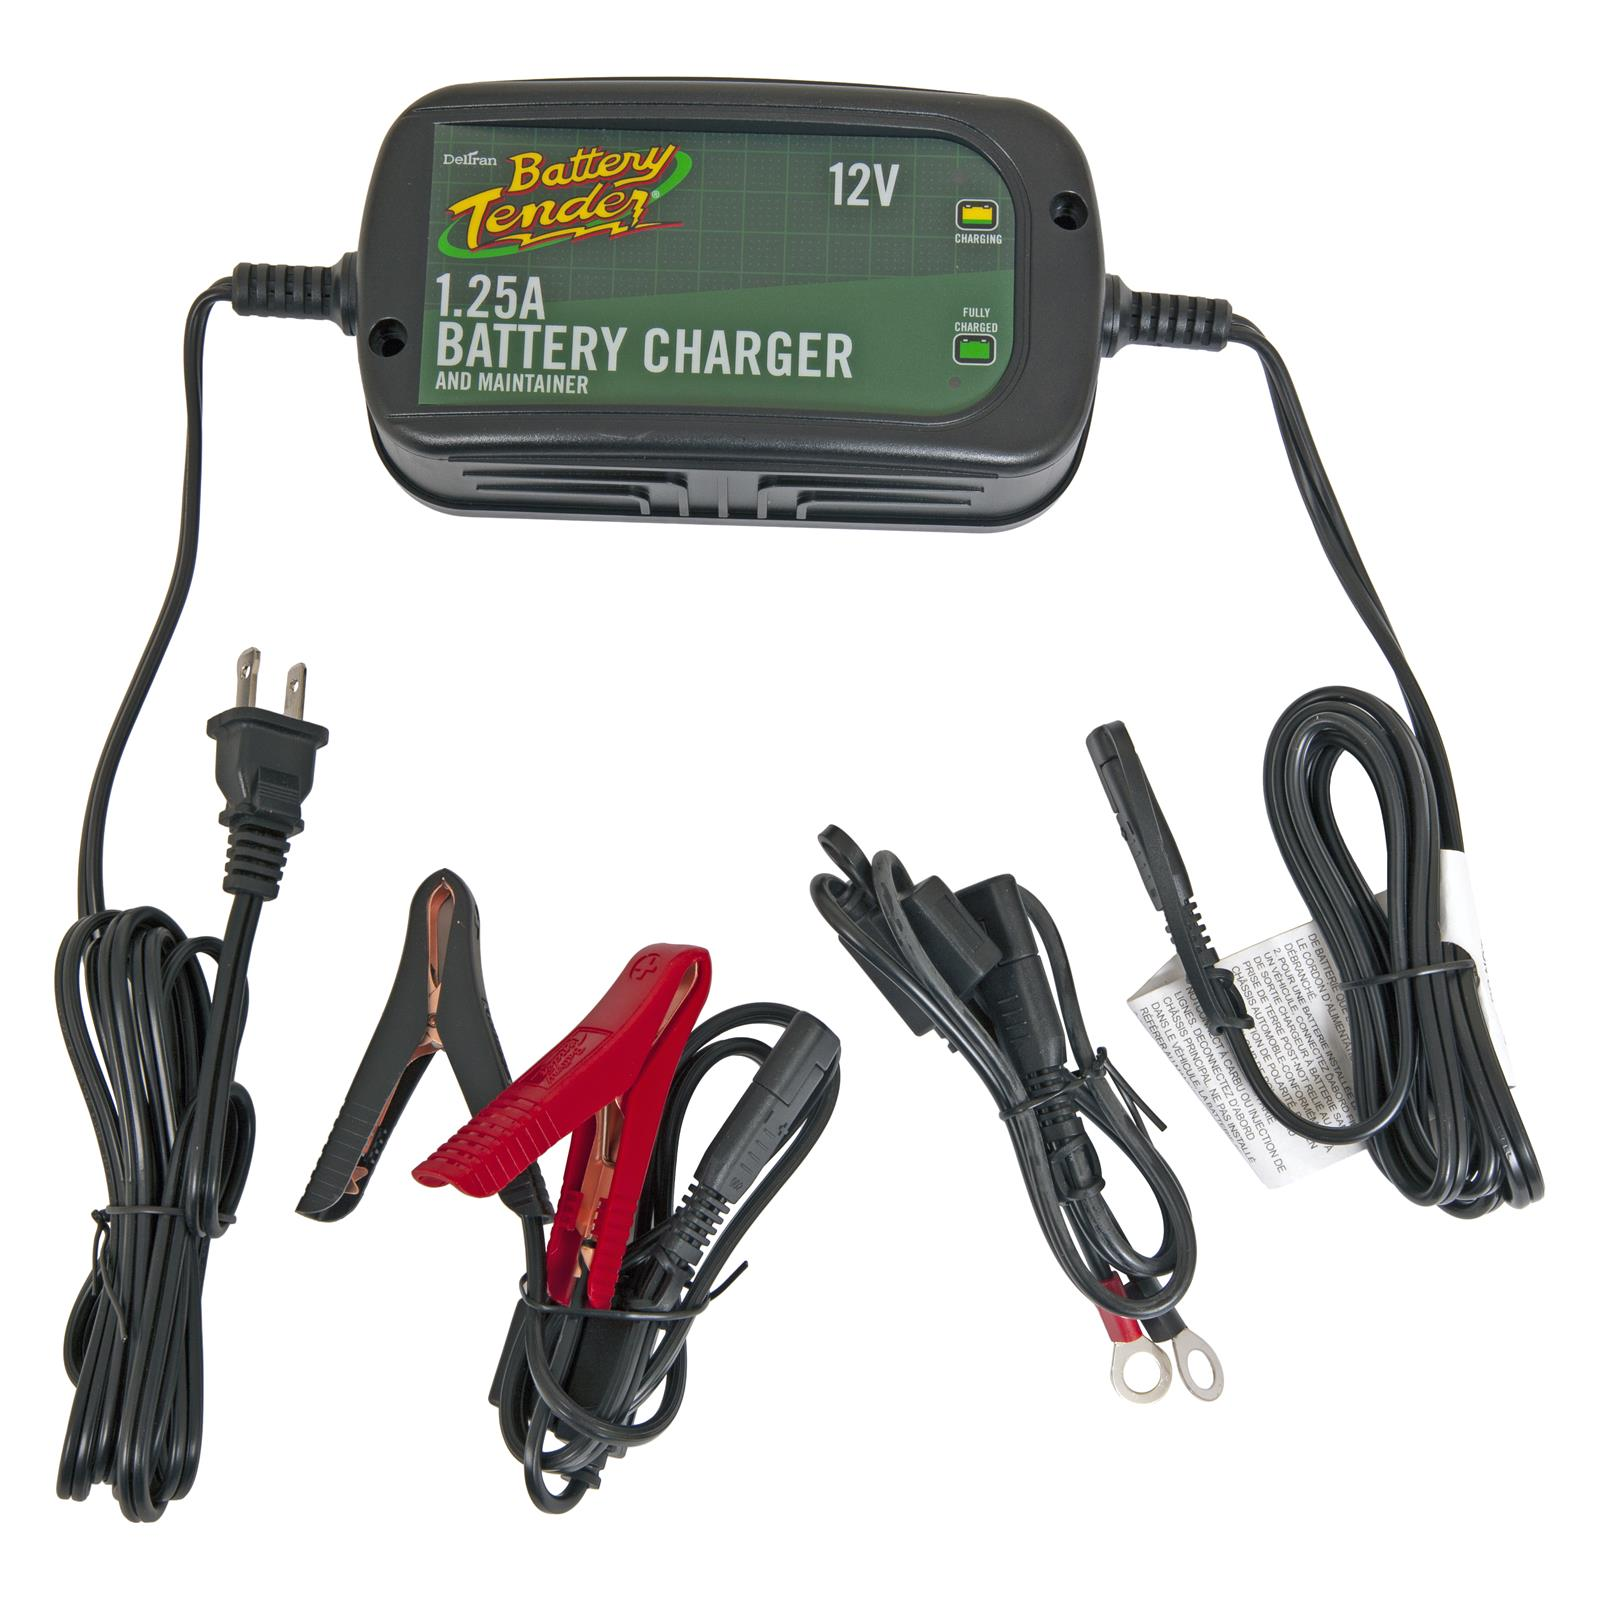 Deltran Battery Tender Plus High Efficiency Chargers 022-0185G-DL-WH